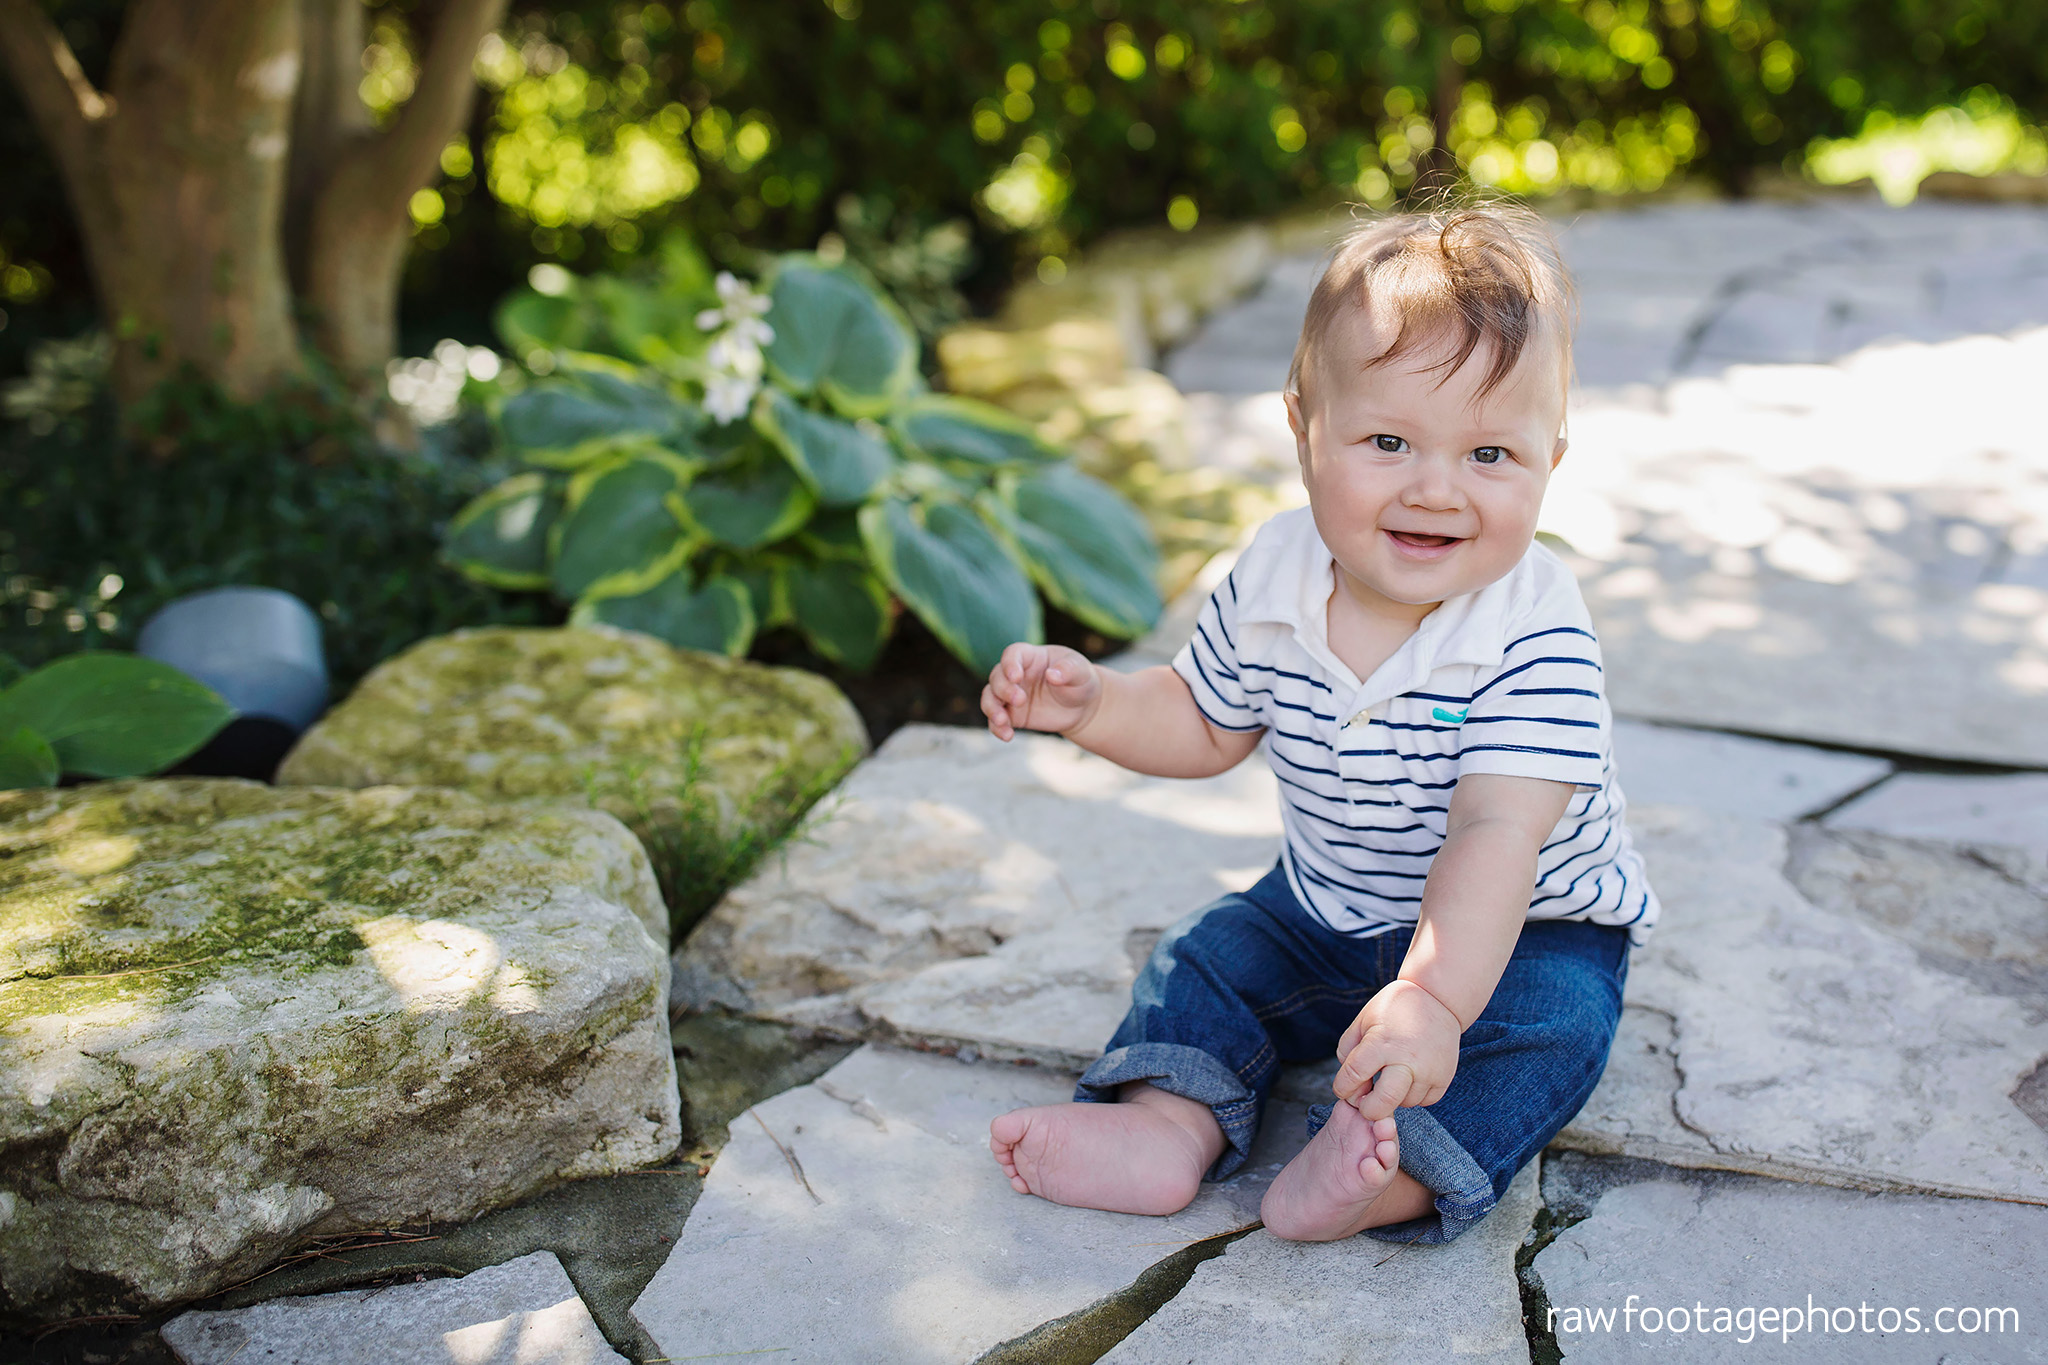 london_ontario_family_photographer-extended_family_session-raw_footage_photography013.jpg